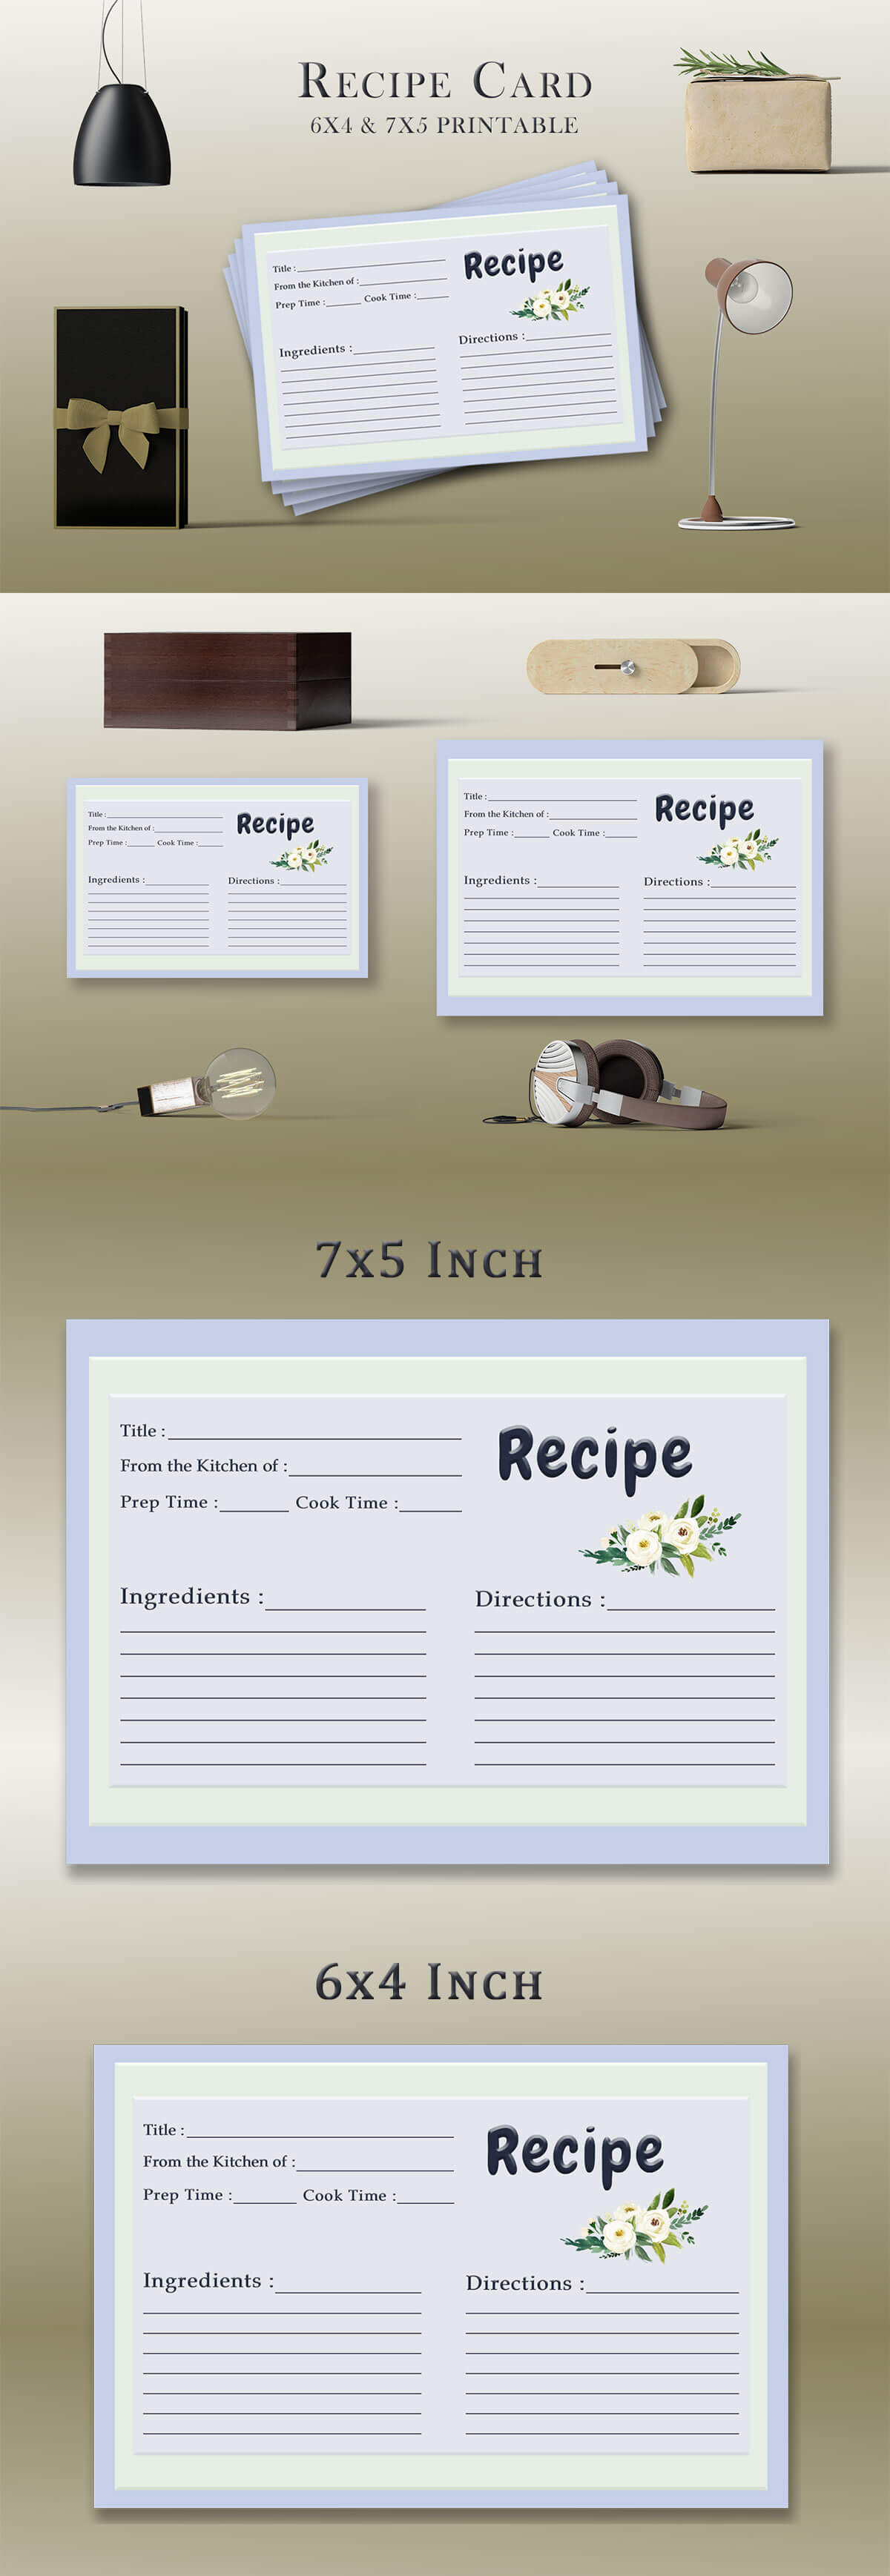 Free Floral Bouquet Recipe Card Template